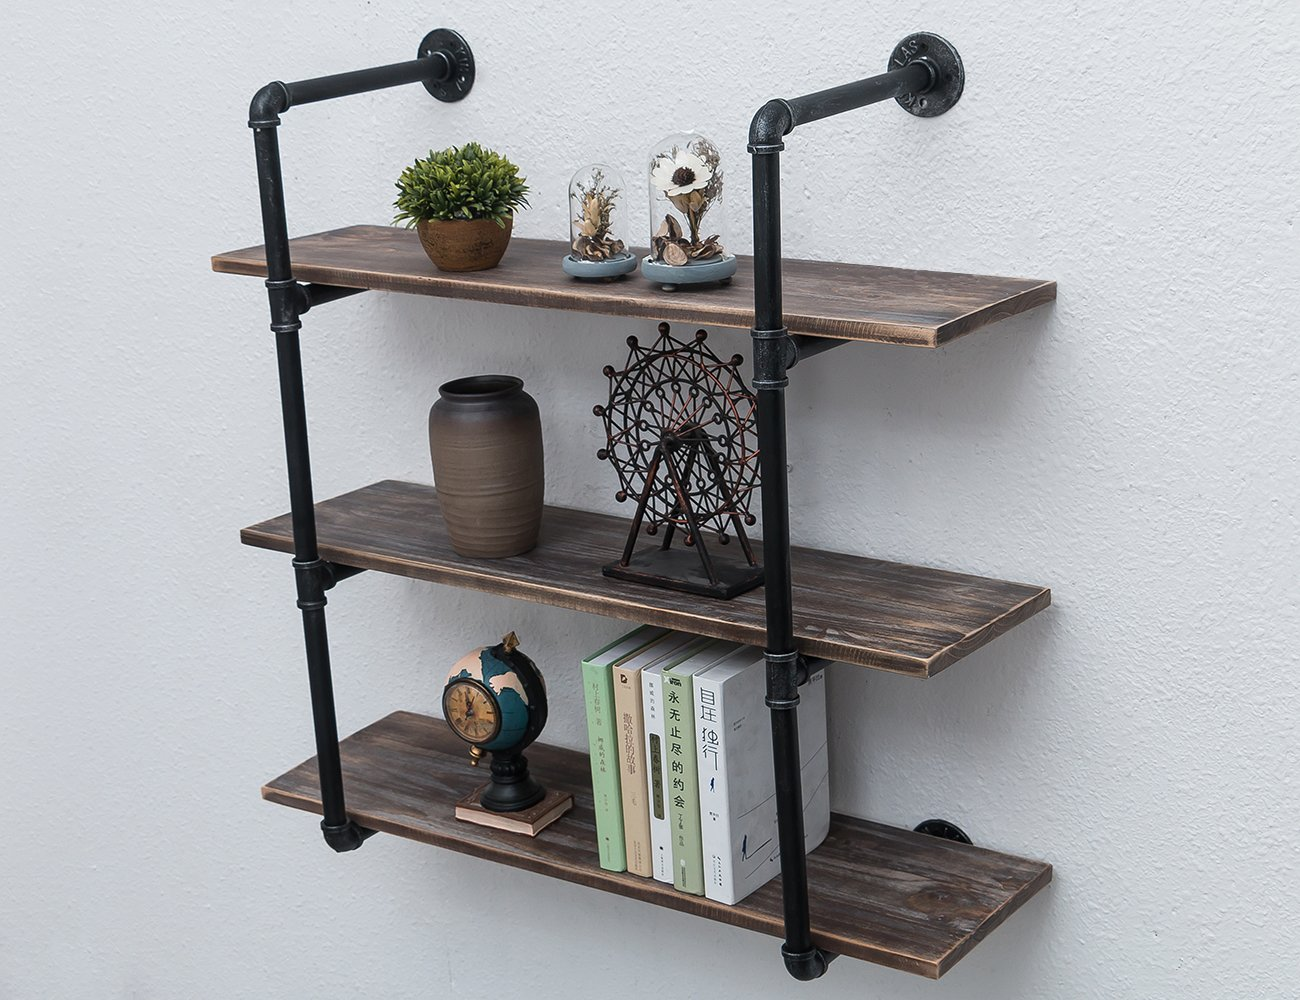 MBQQ Industrial Iron Pipe Shelf DIY with Wood 36.2in Retro Storage Book Shelves Wall Mounted Shelving Hung Bracket 3-Shelf Organizer 5